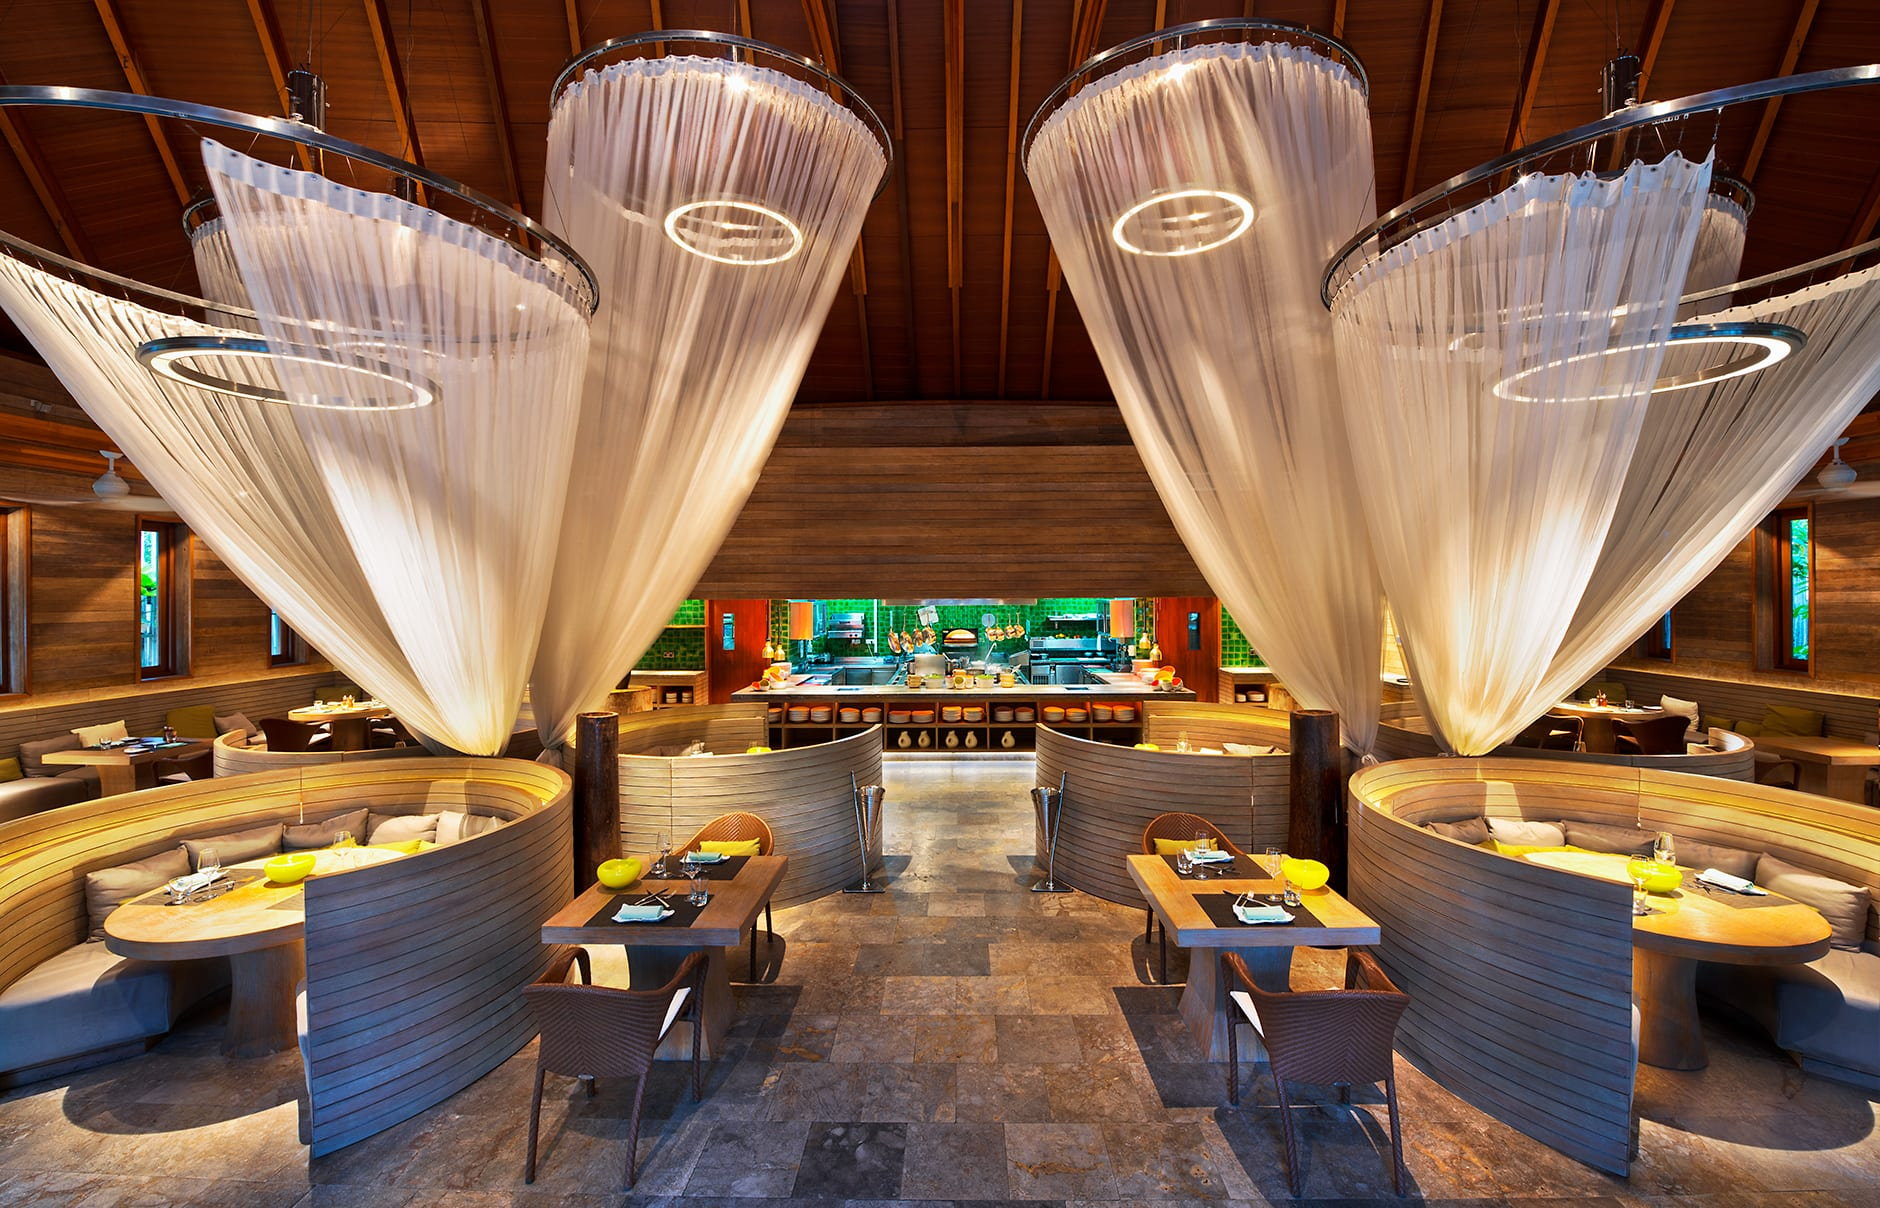 Kitchen Restaurant. W Maldives, Fesdu Island, Maldives. Hotel Review by TravelPlusStyle. Photo © Marriott International